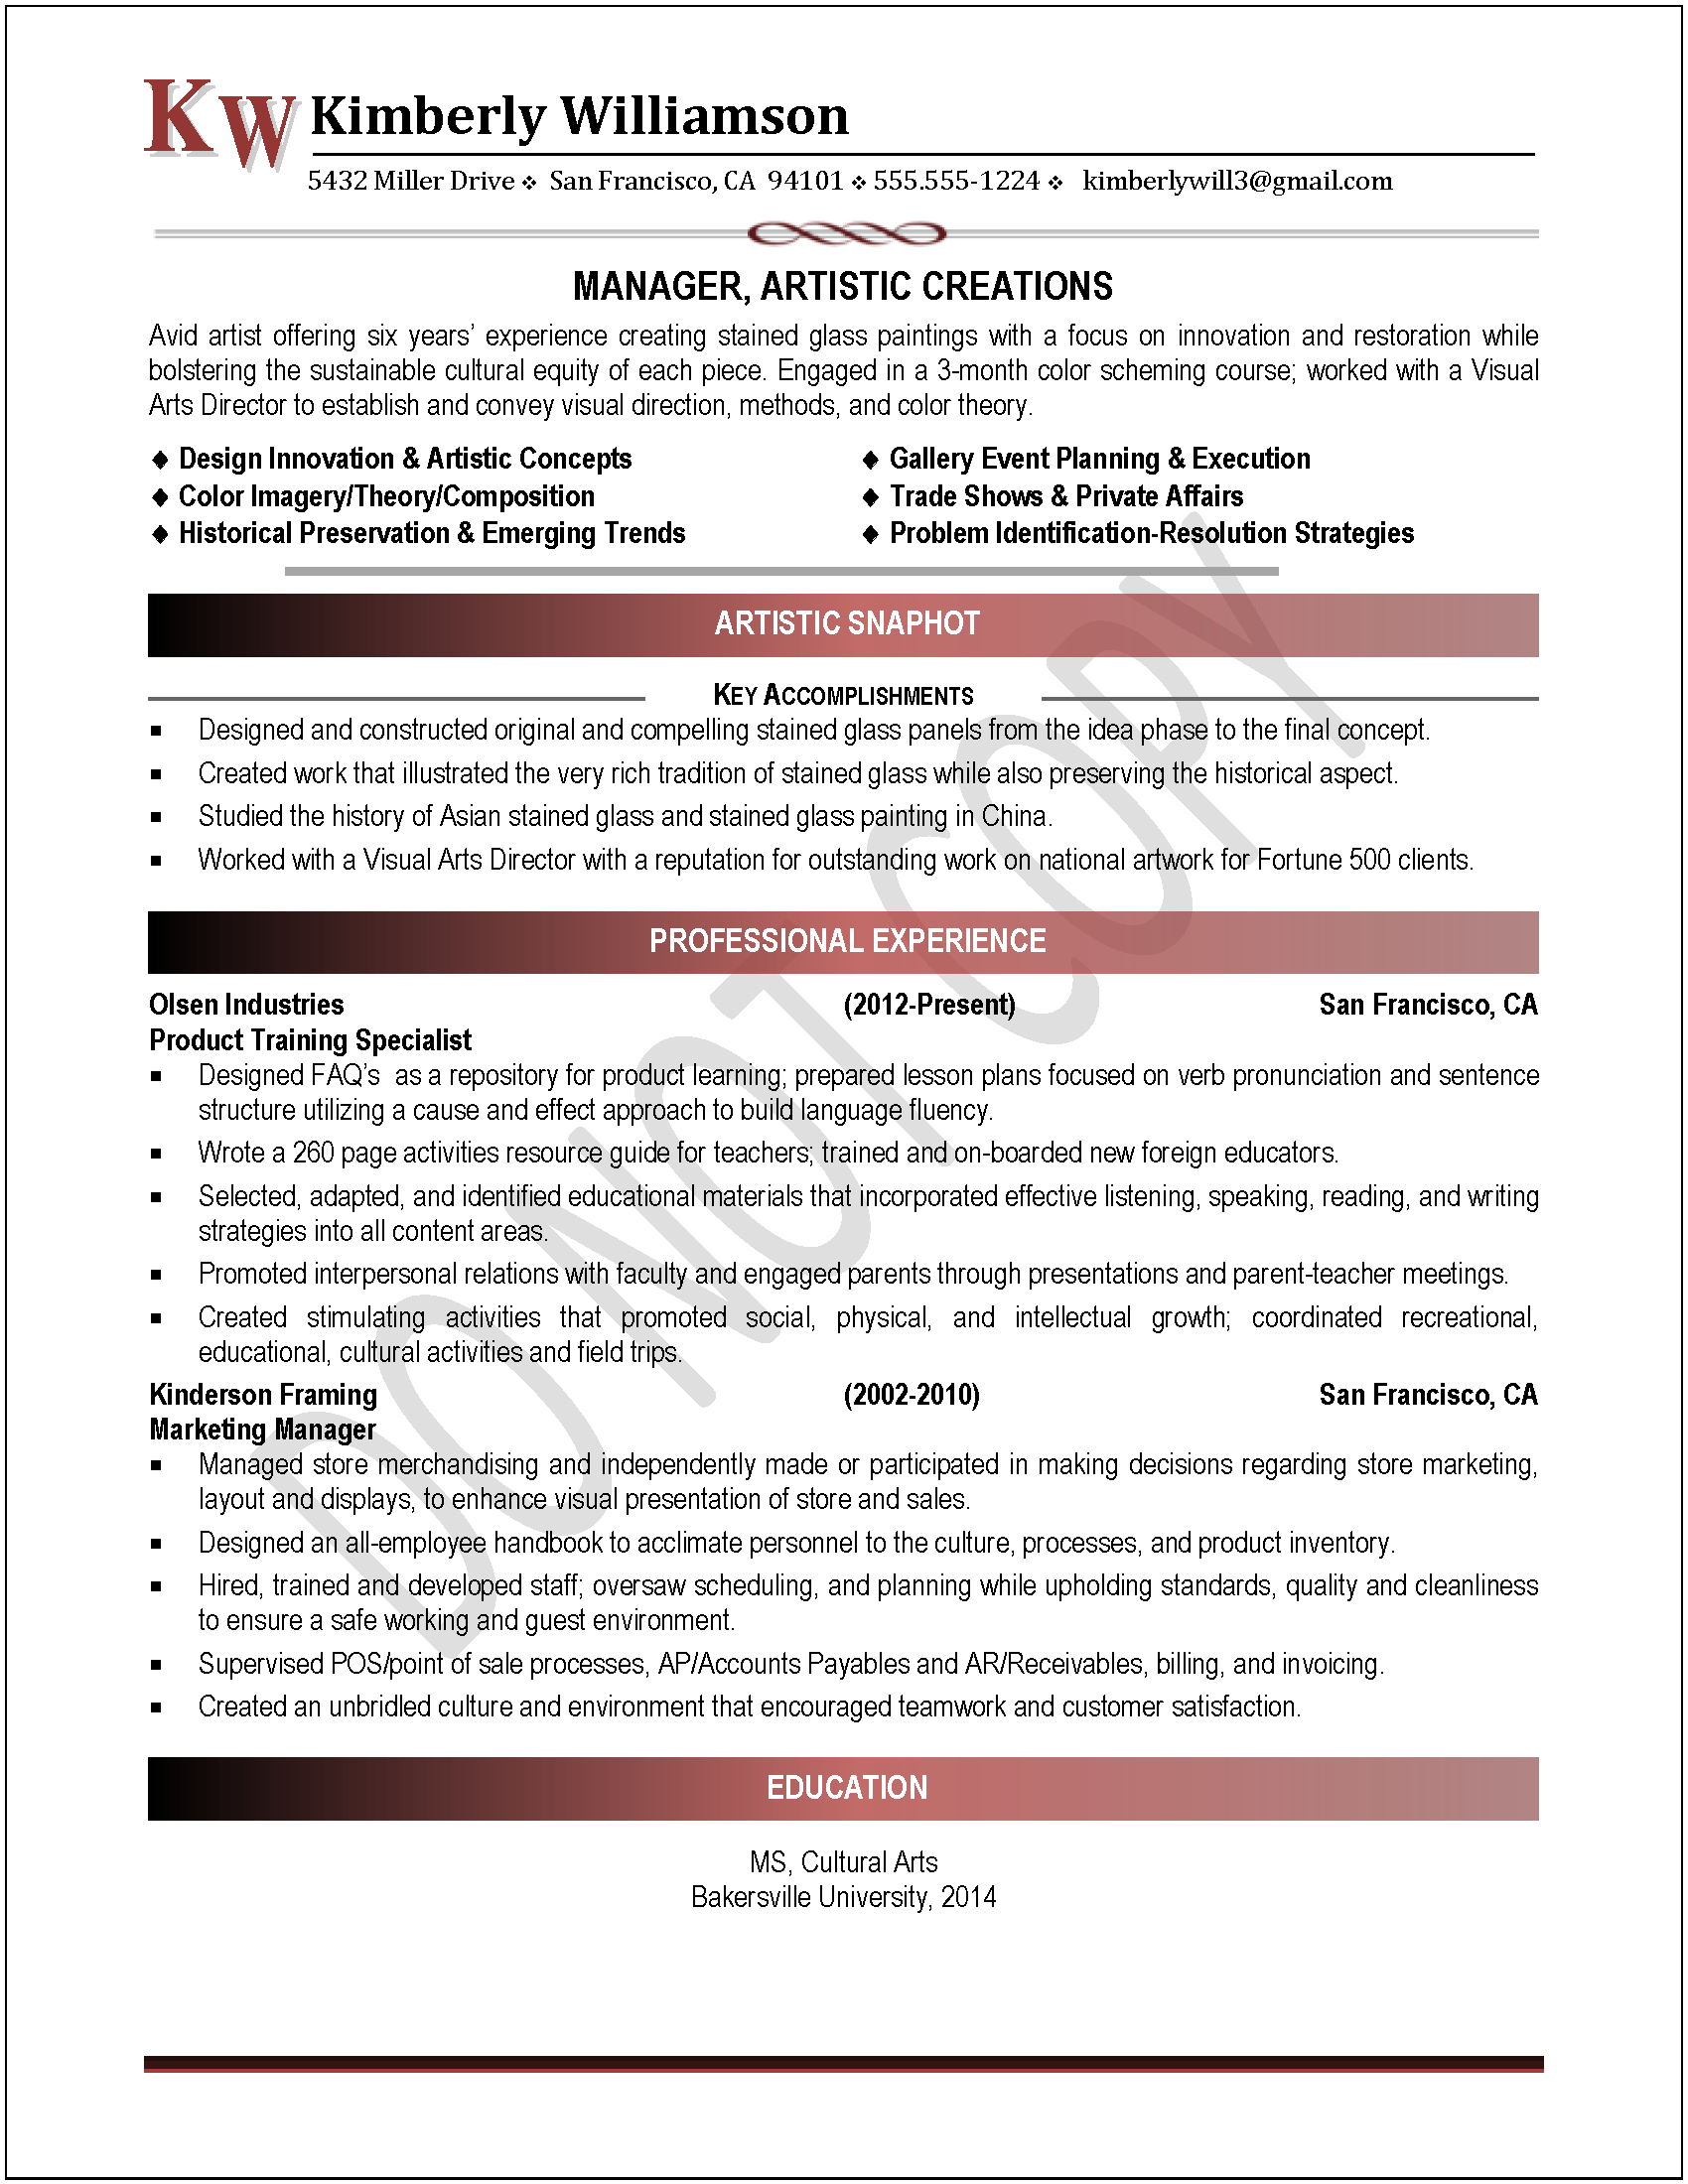 Professional Examples Of Resumes 21271 Exles Of Professional Resumes Search Results For